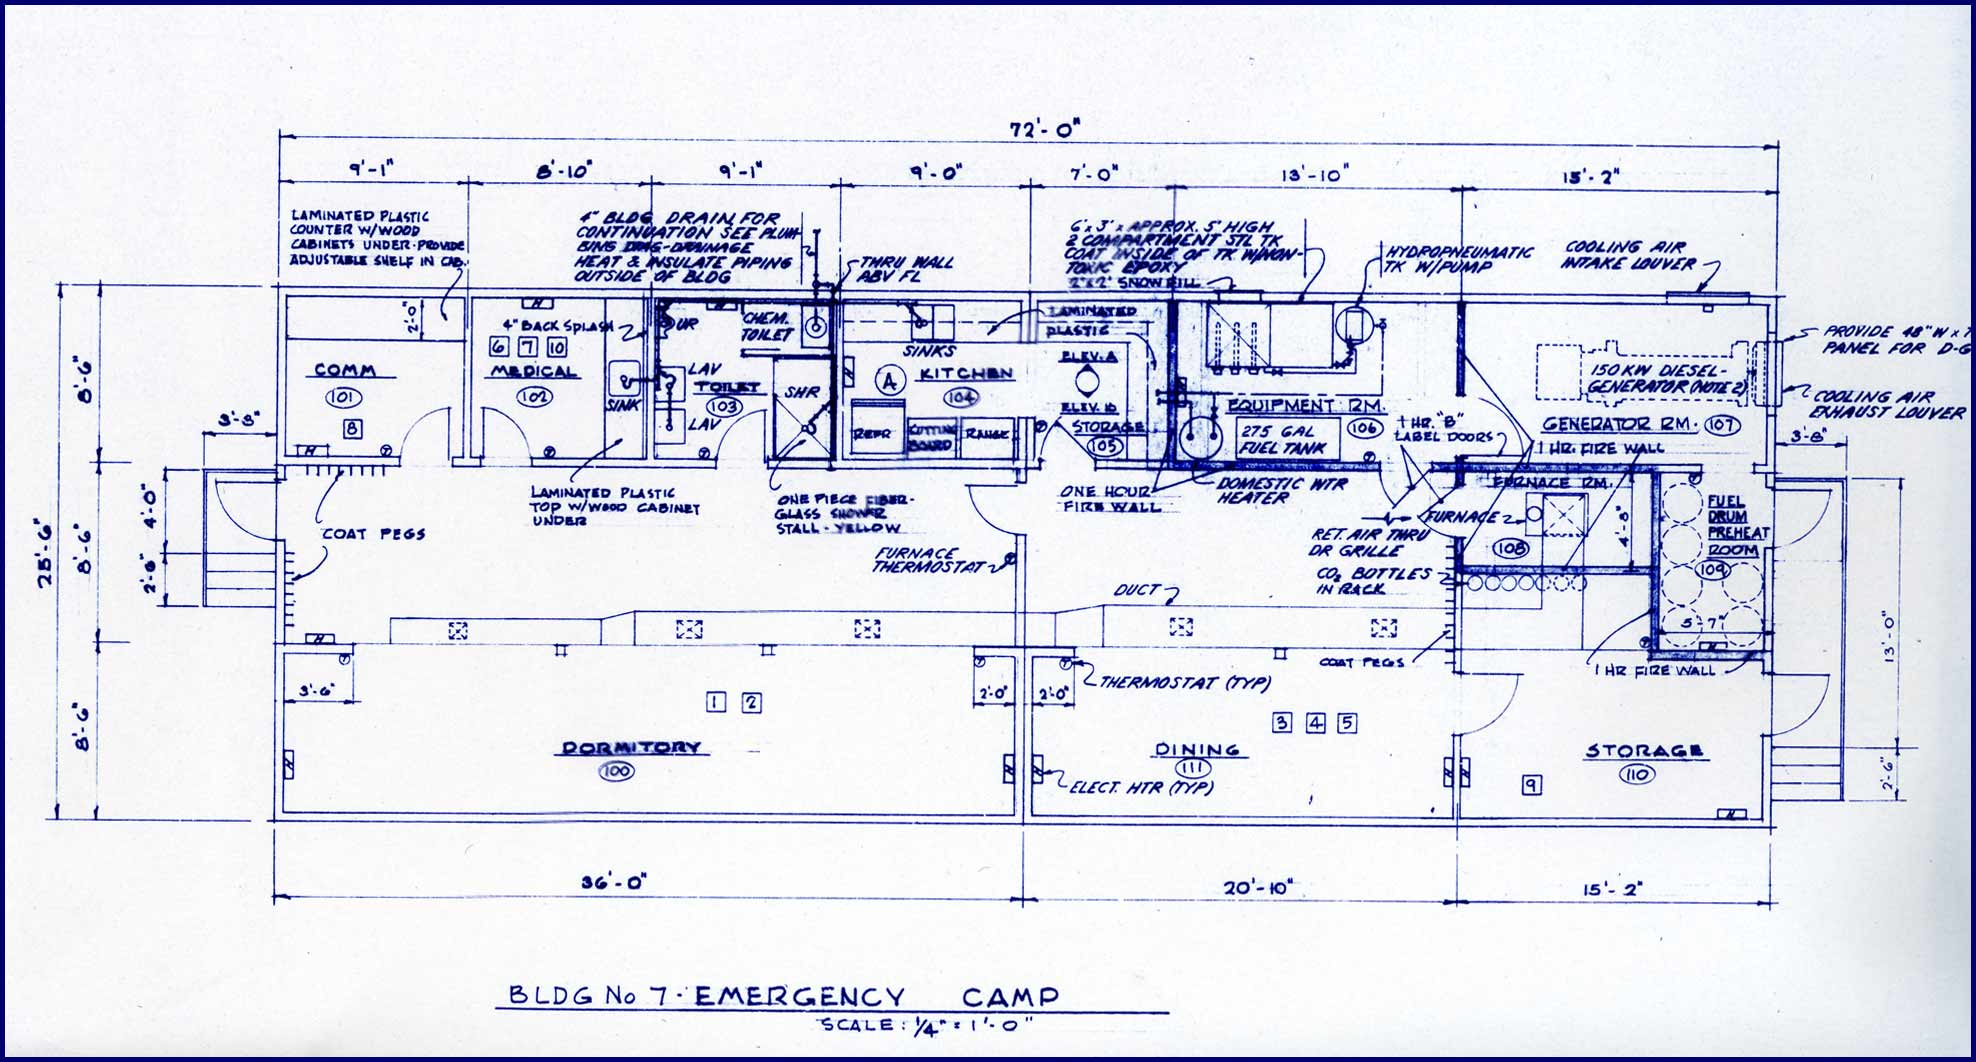 Home construction drawing at getdrawings free for personal use 1976x1062 2006 winter photos malvernweather Image collections